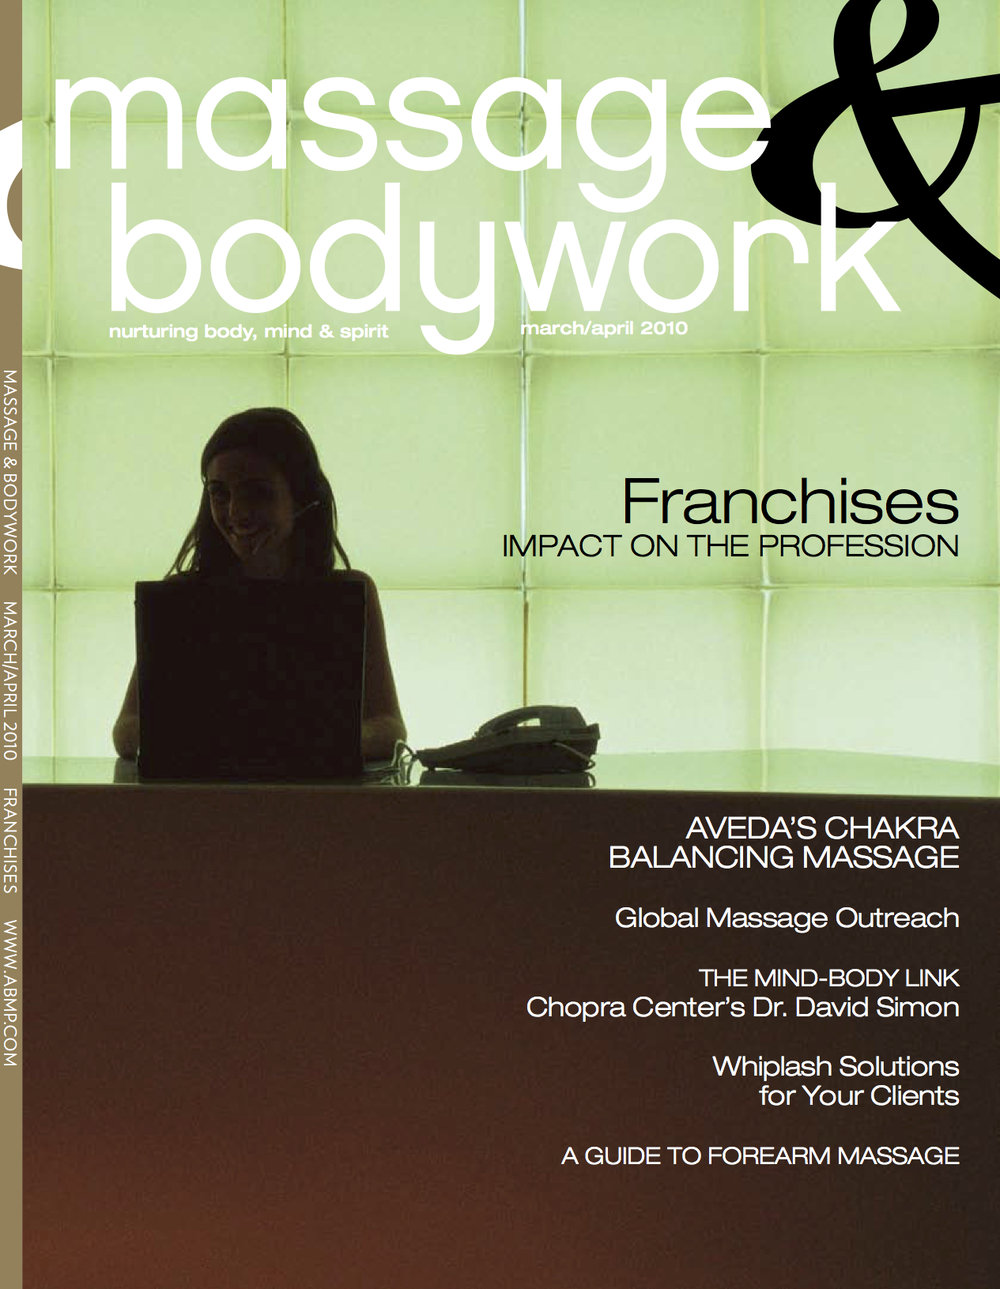 Massage & Bodywork- March / April 2010